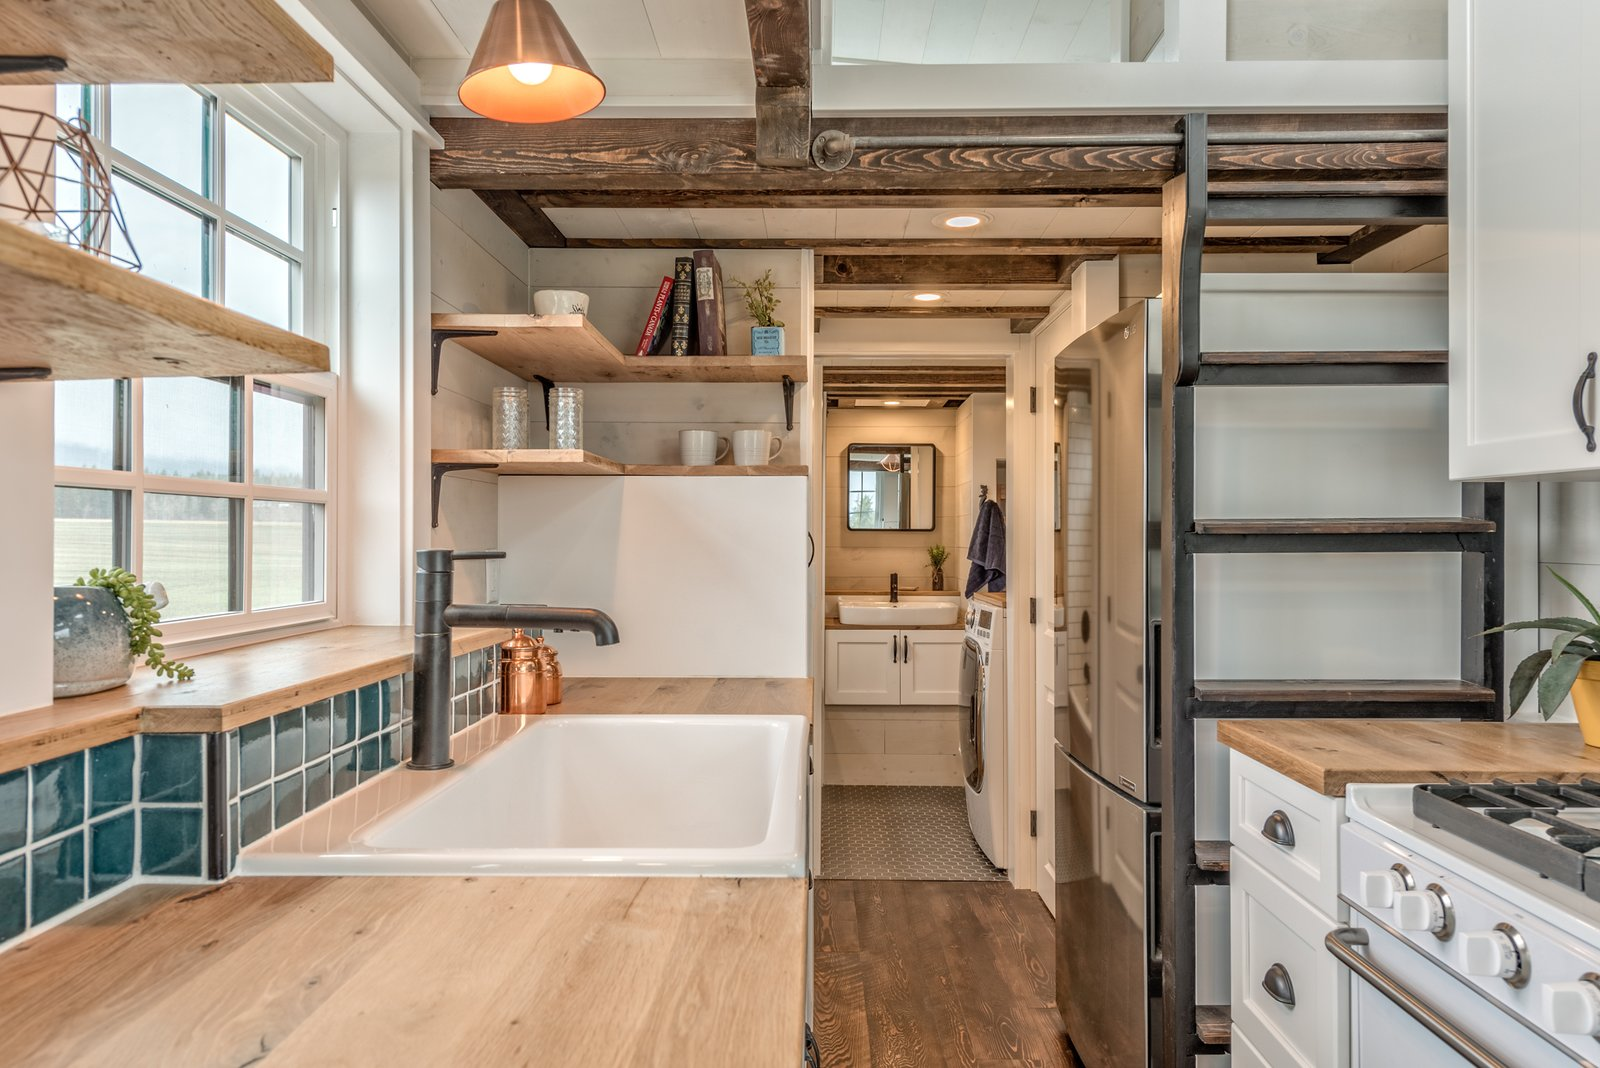 Kitchen, Recessed, Wall Oven, Medium Hardwood, Wood, Ceramic Tile, White, Drop In, and Pendant The ladder to the loft can be slid to the side when not in use.     Best Kitchen Recessed Pendant Wall Oven Wood Photos from This Canadian Tiny Home Beams a Rustic, West Coast Vibe